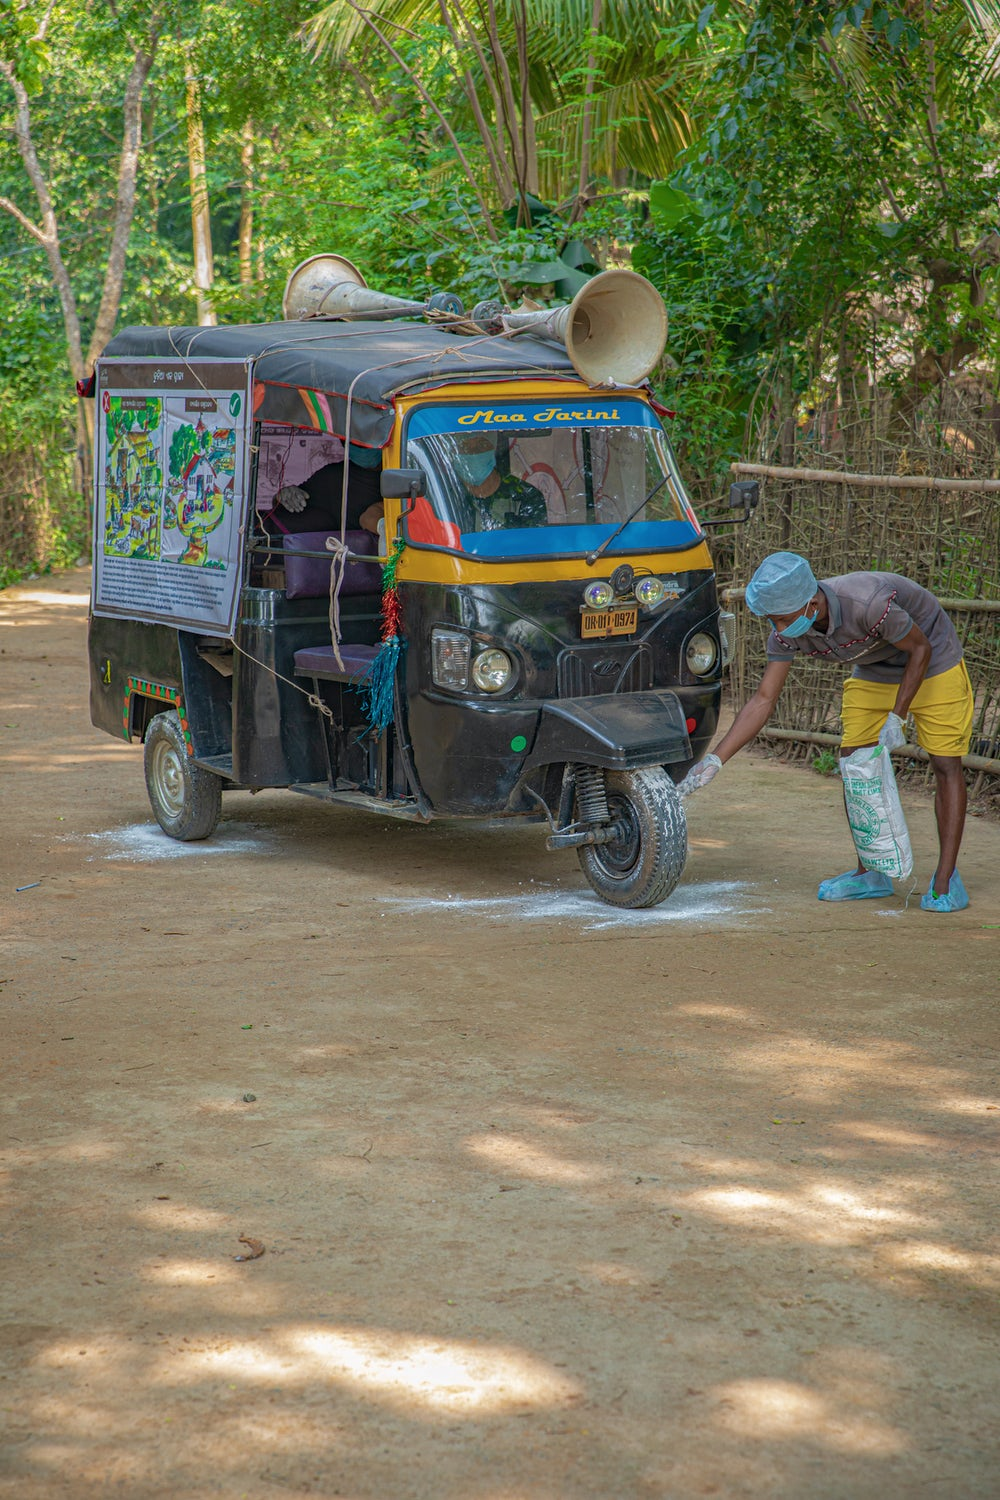 Auto units containing audio systems and educational posters make rounds in villages to generate awareness on COVID-19 precautions and poultry production practices.